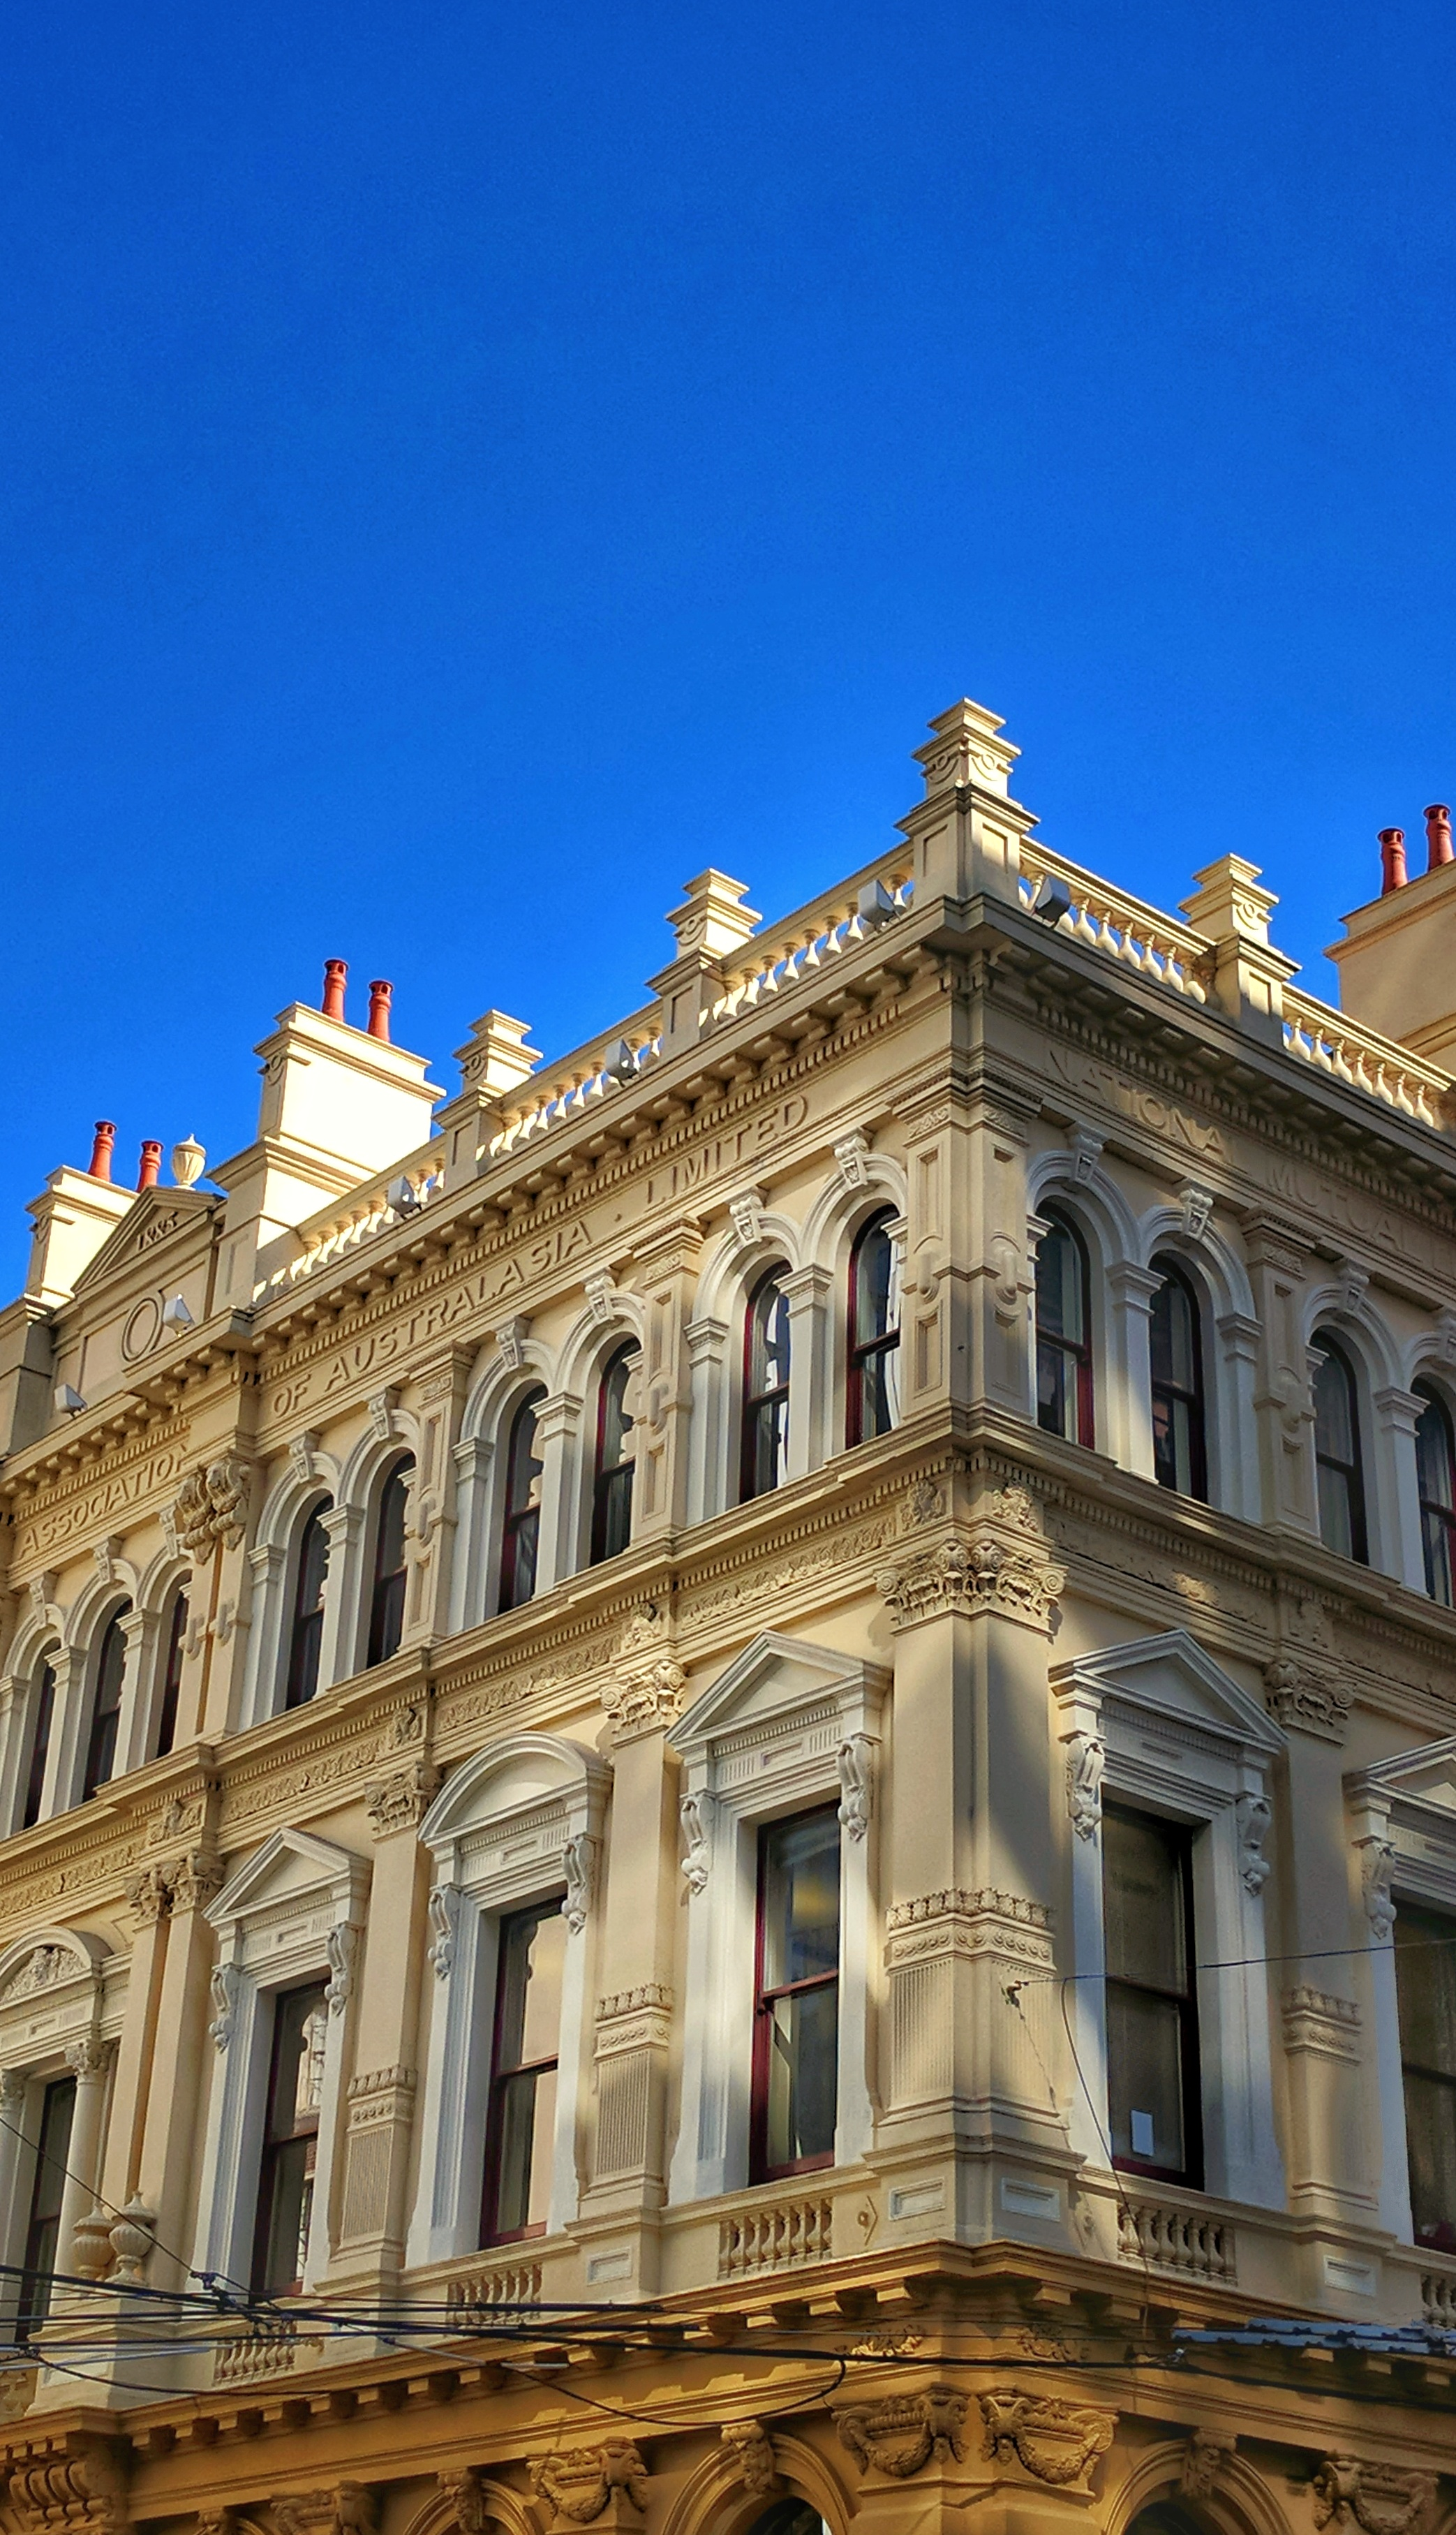 Old Bank building, Wellington (New Zealand)